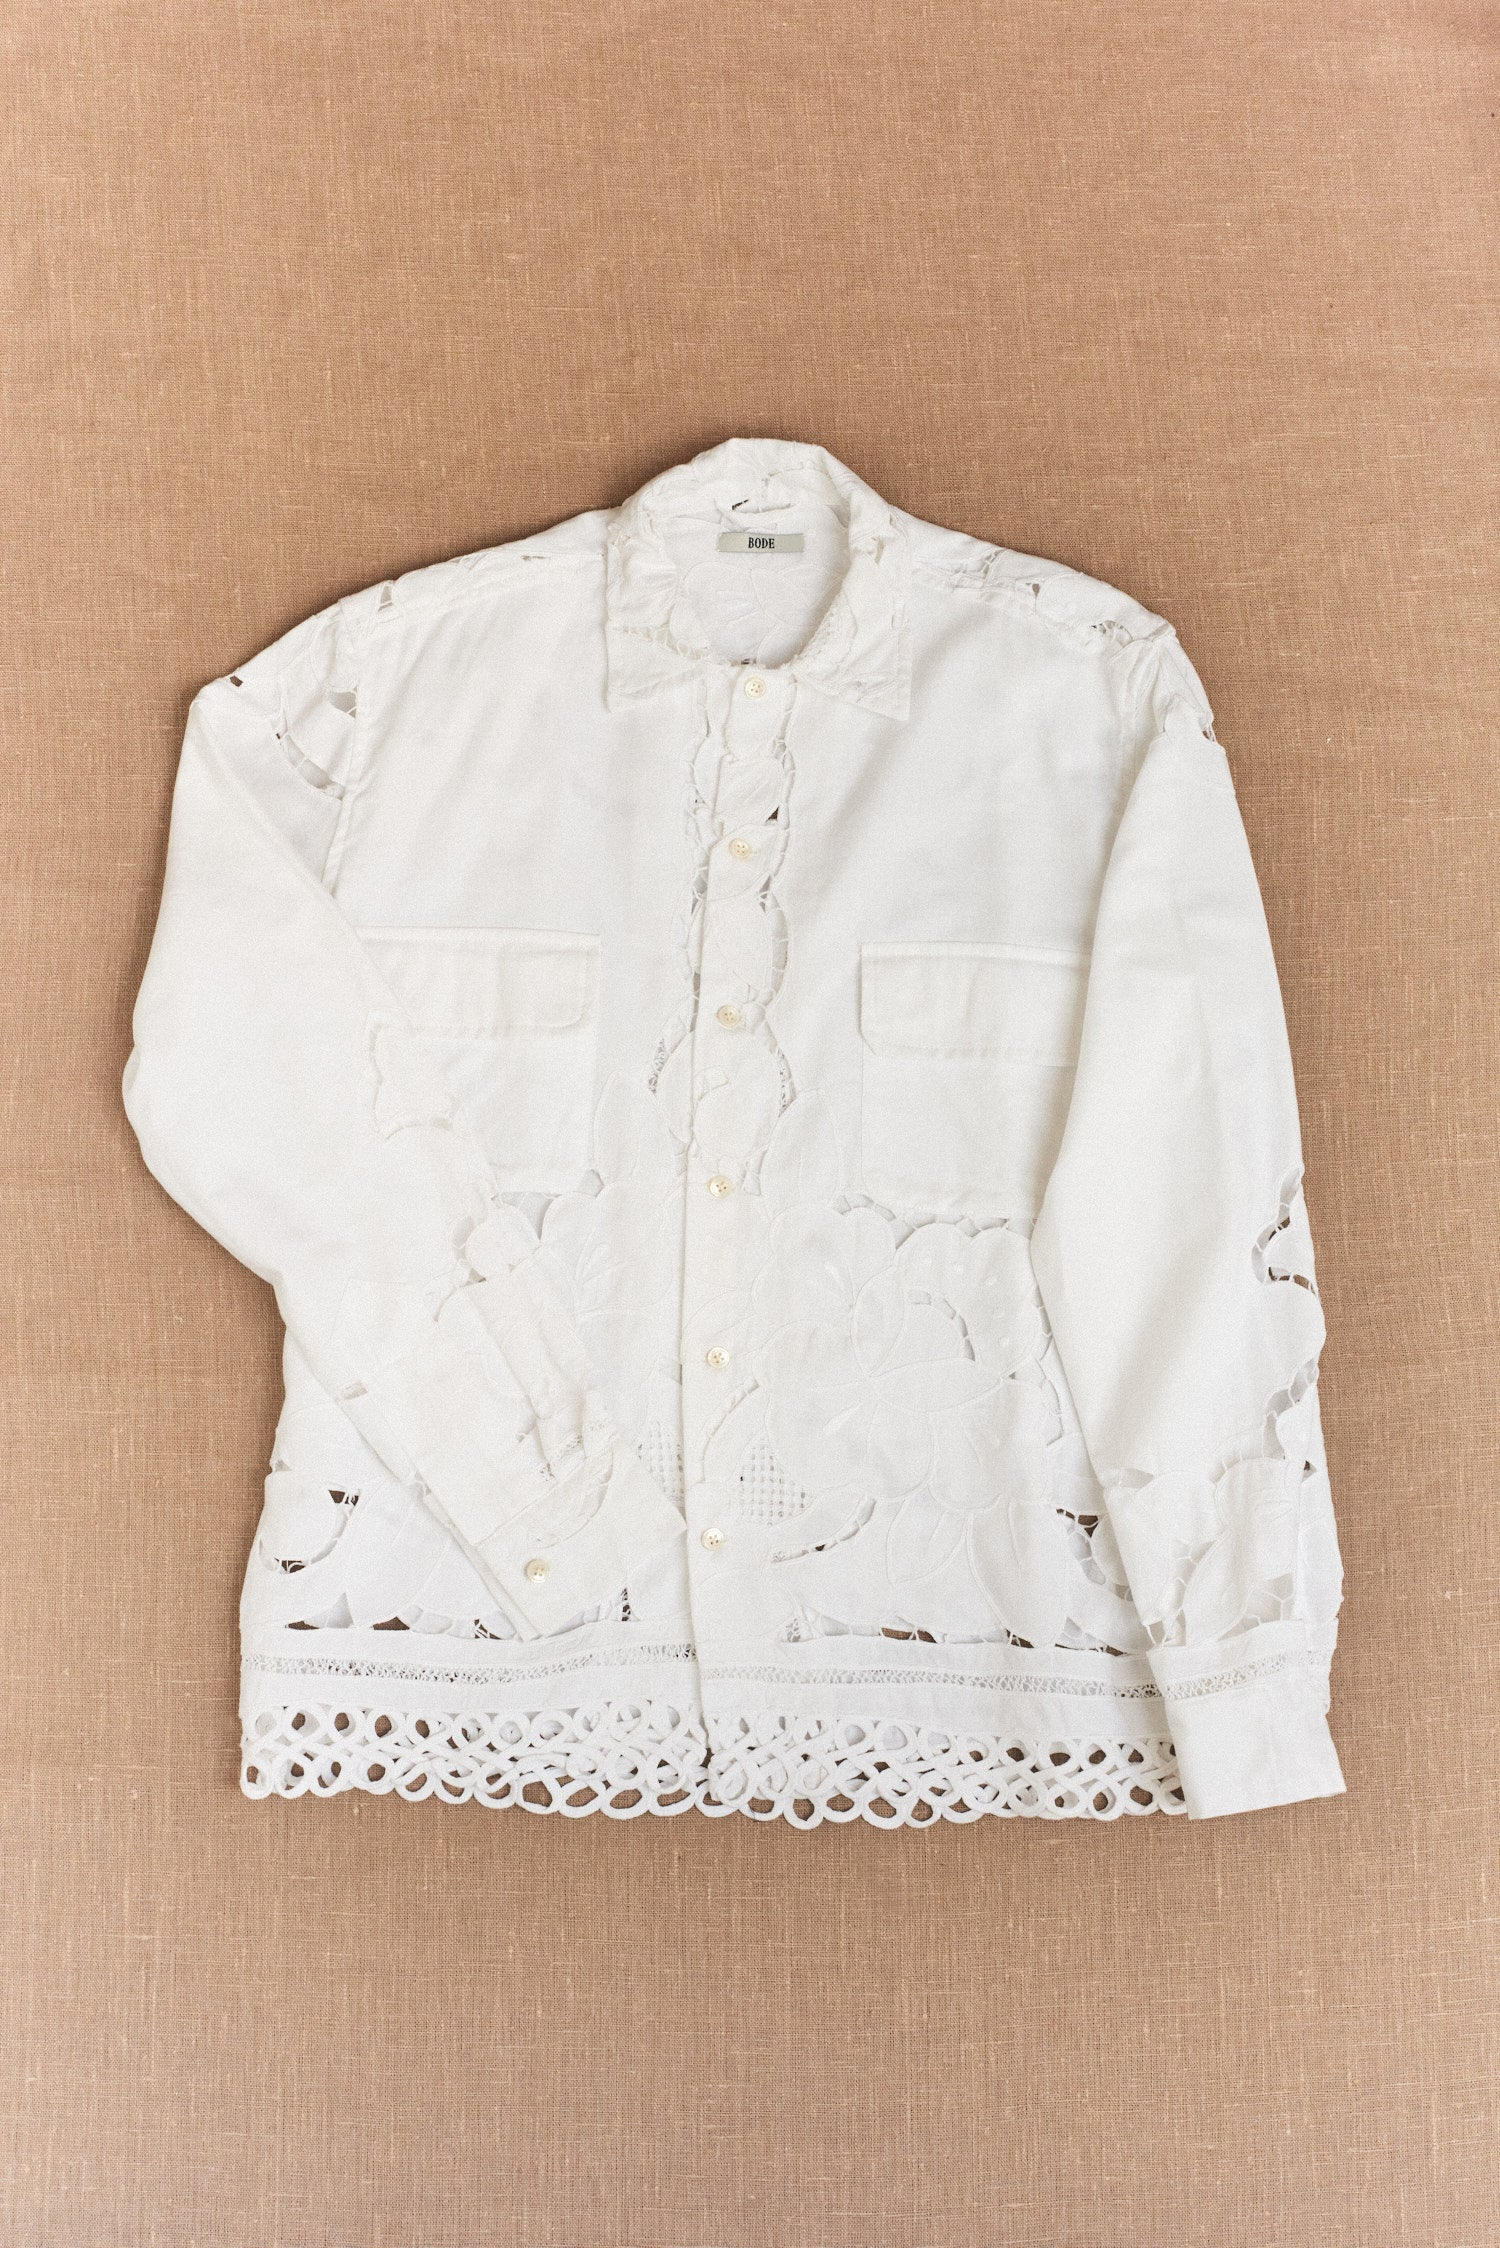 Bode, One-Of-A-Kind Ladderwork Lace Shirt